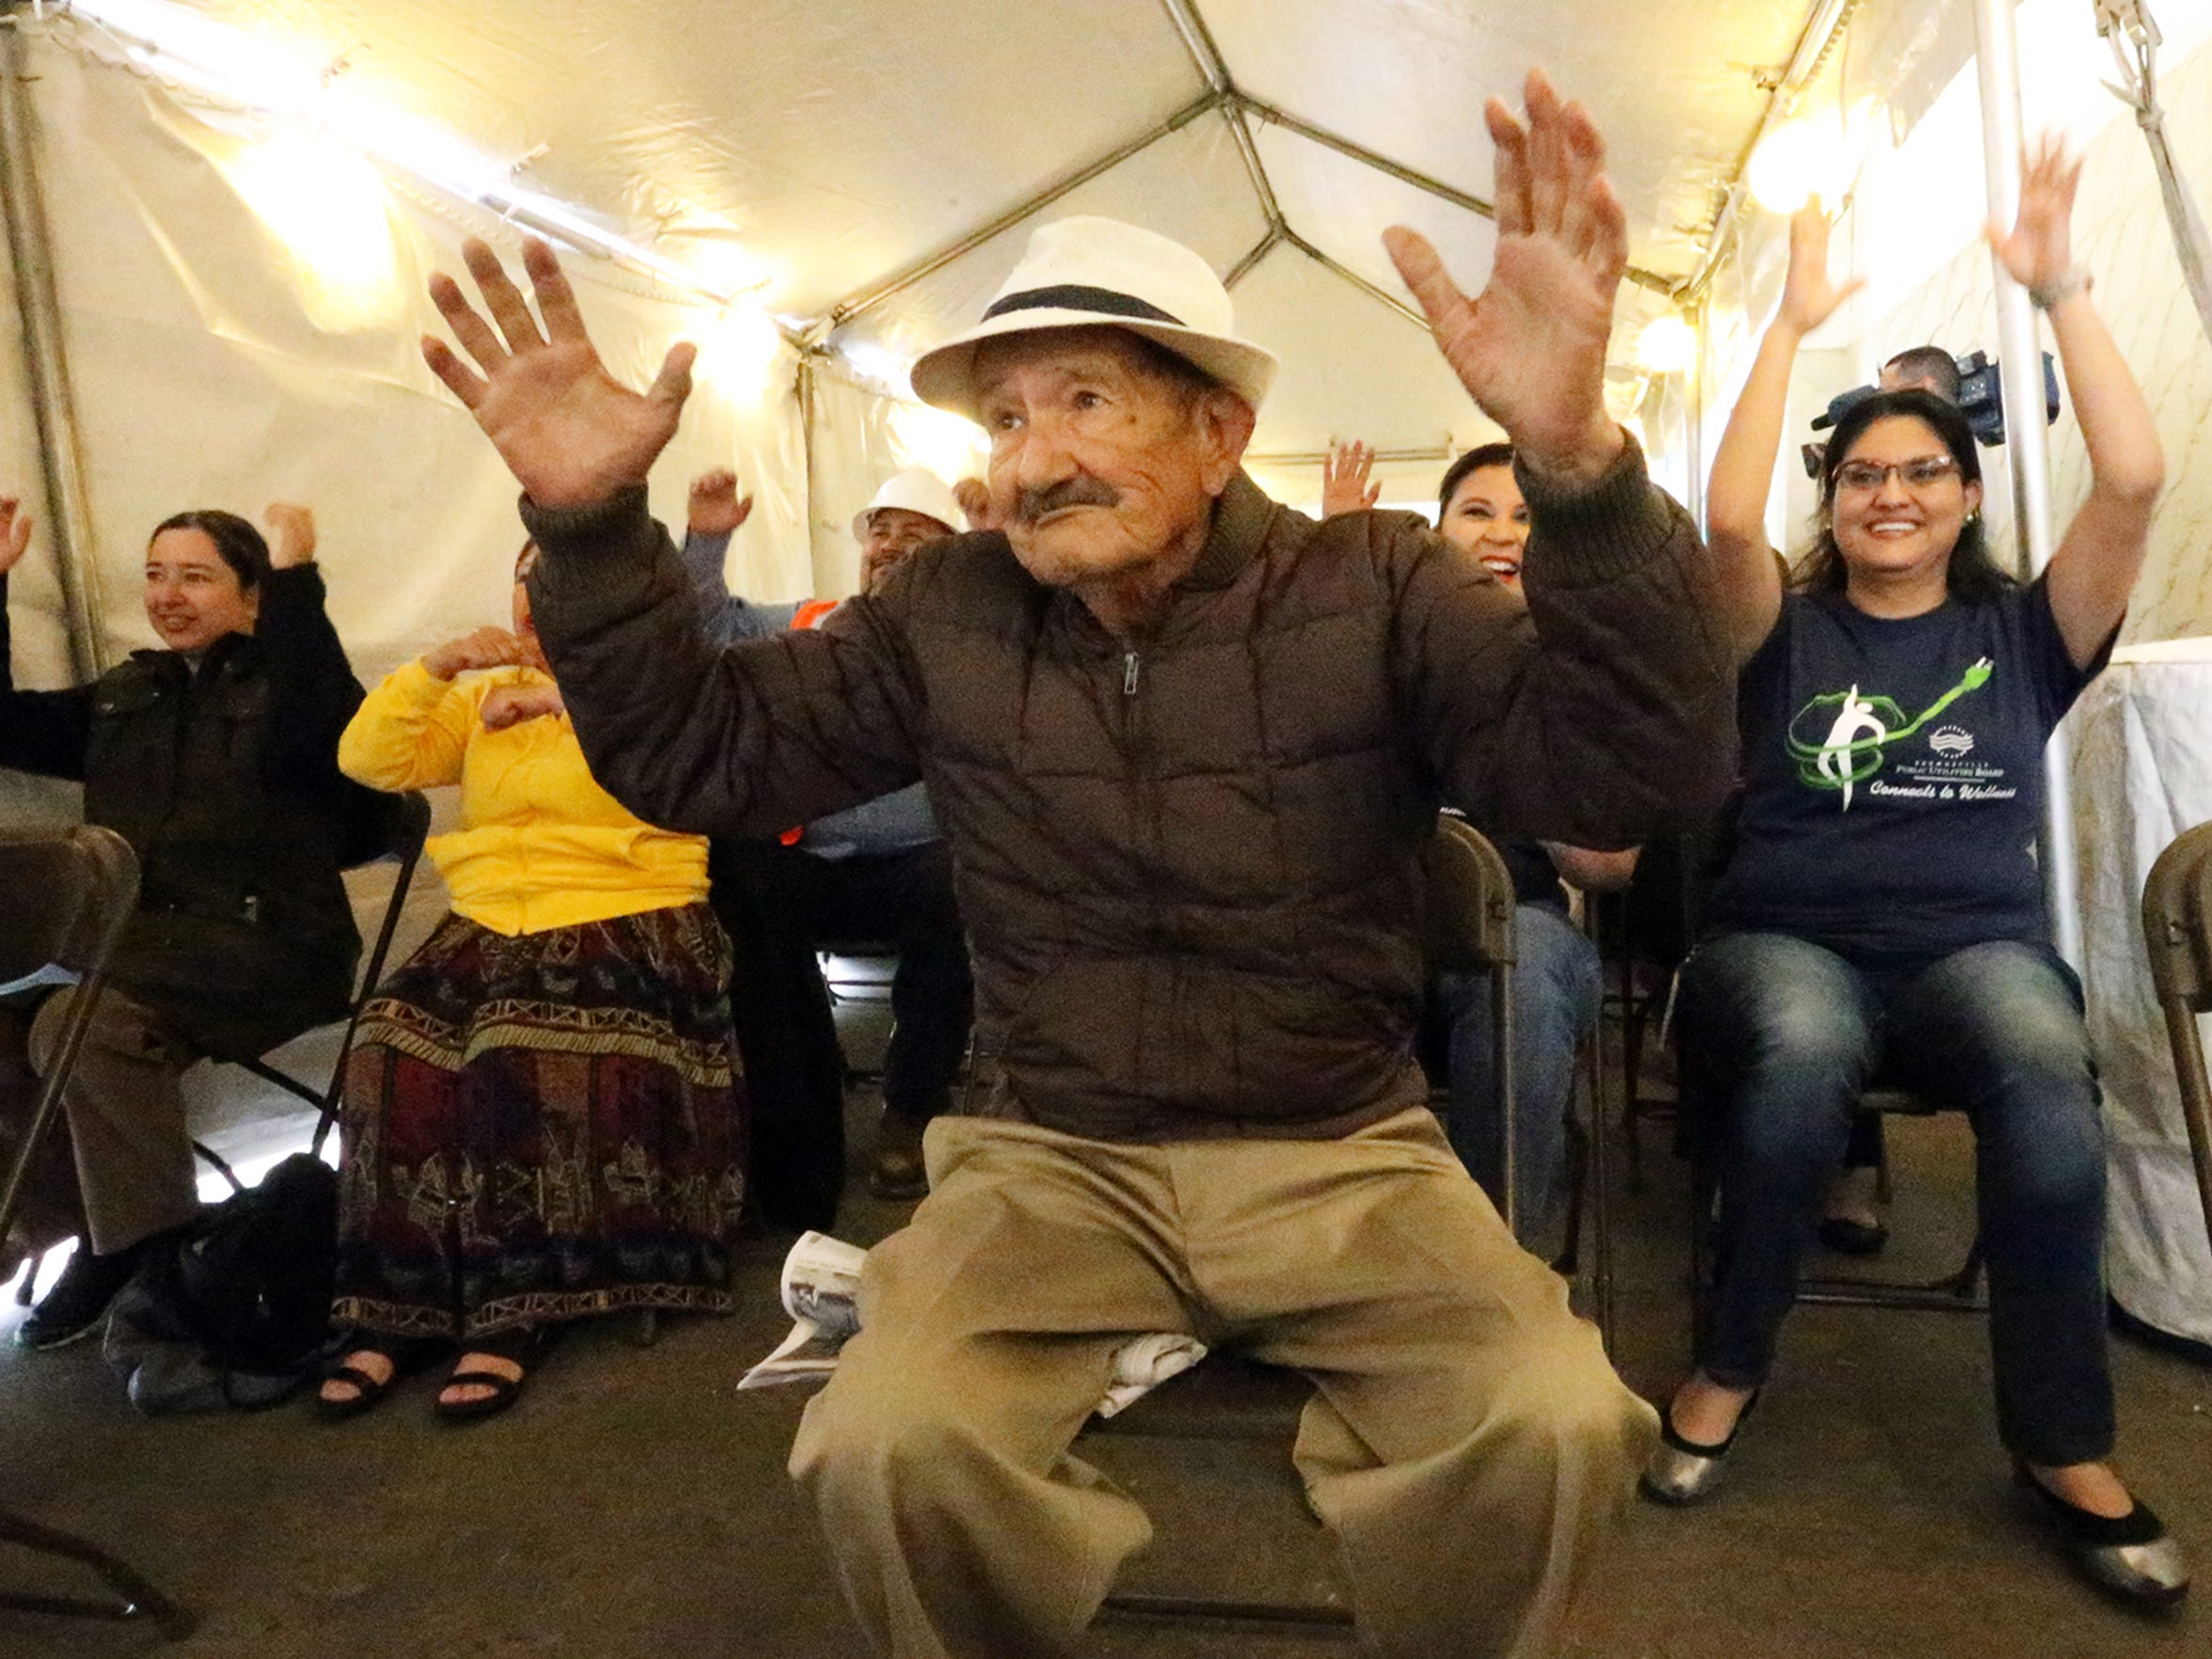 Ruperto Pedraza, 82, takes part in chair aerobics in a tent outside an H.E.B. grocery store in Brownsville, TX. The store chain provides free periodic talks on healthy eating, health screenings and exercises.